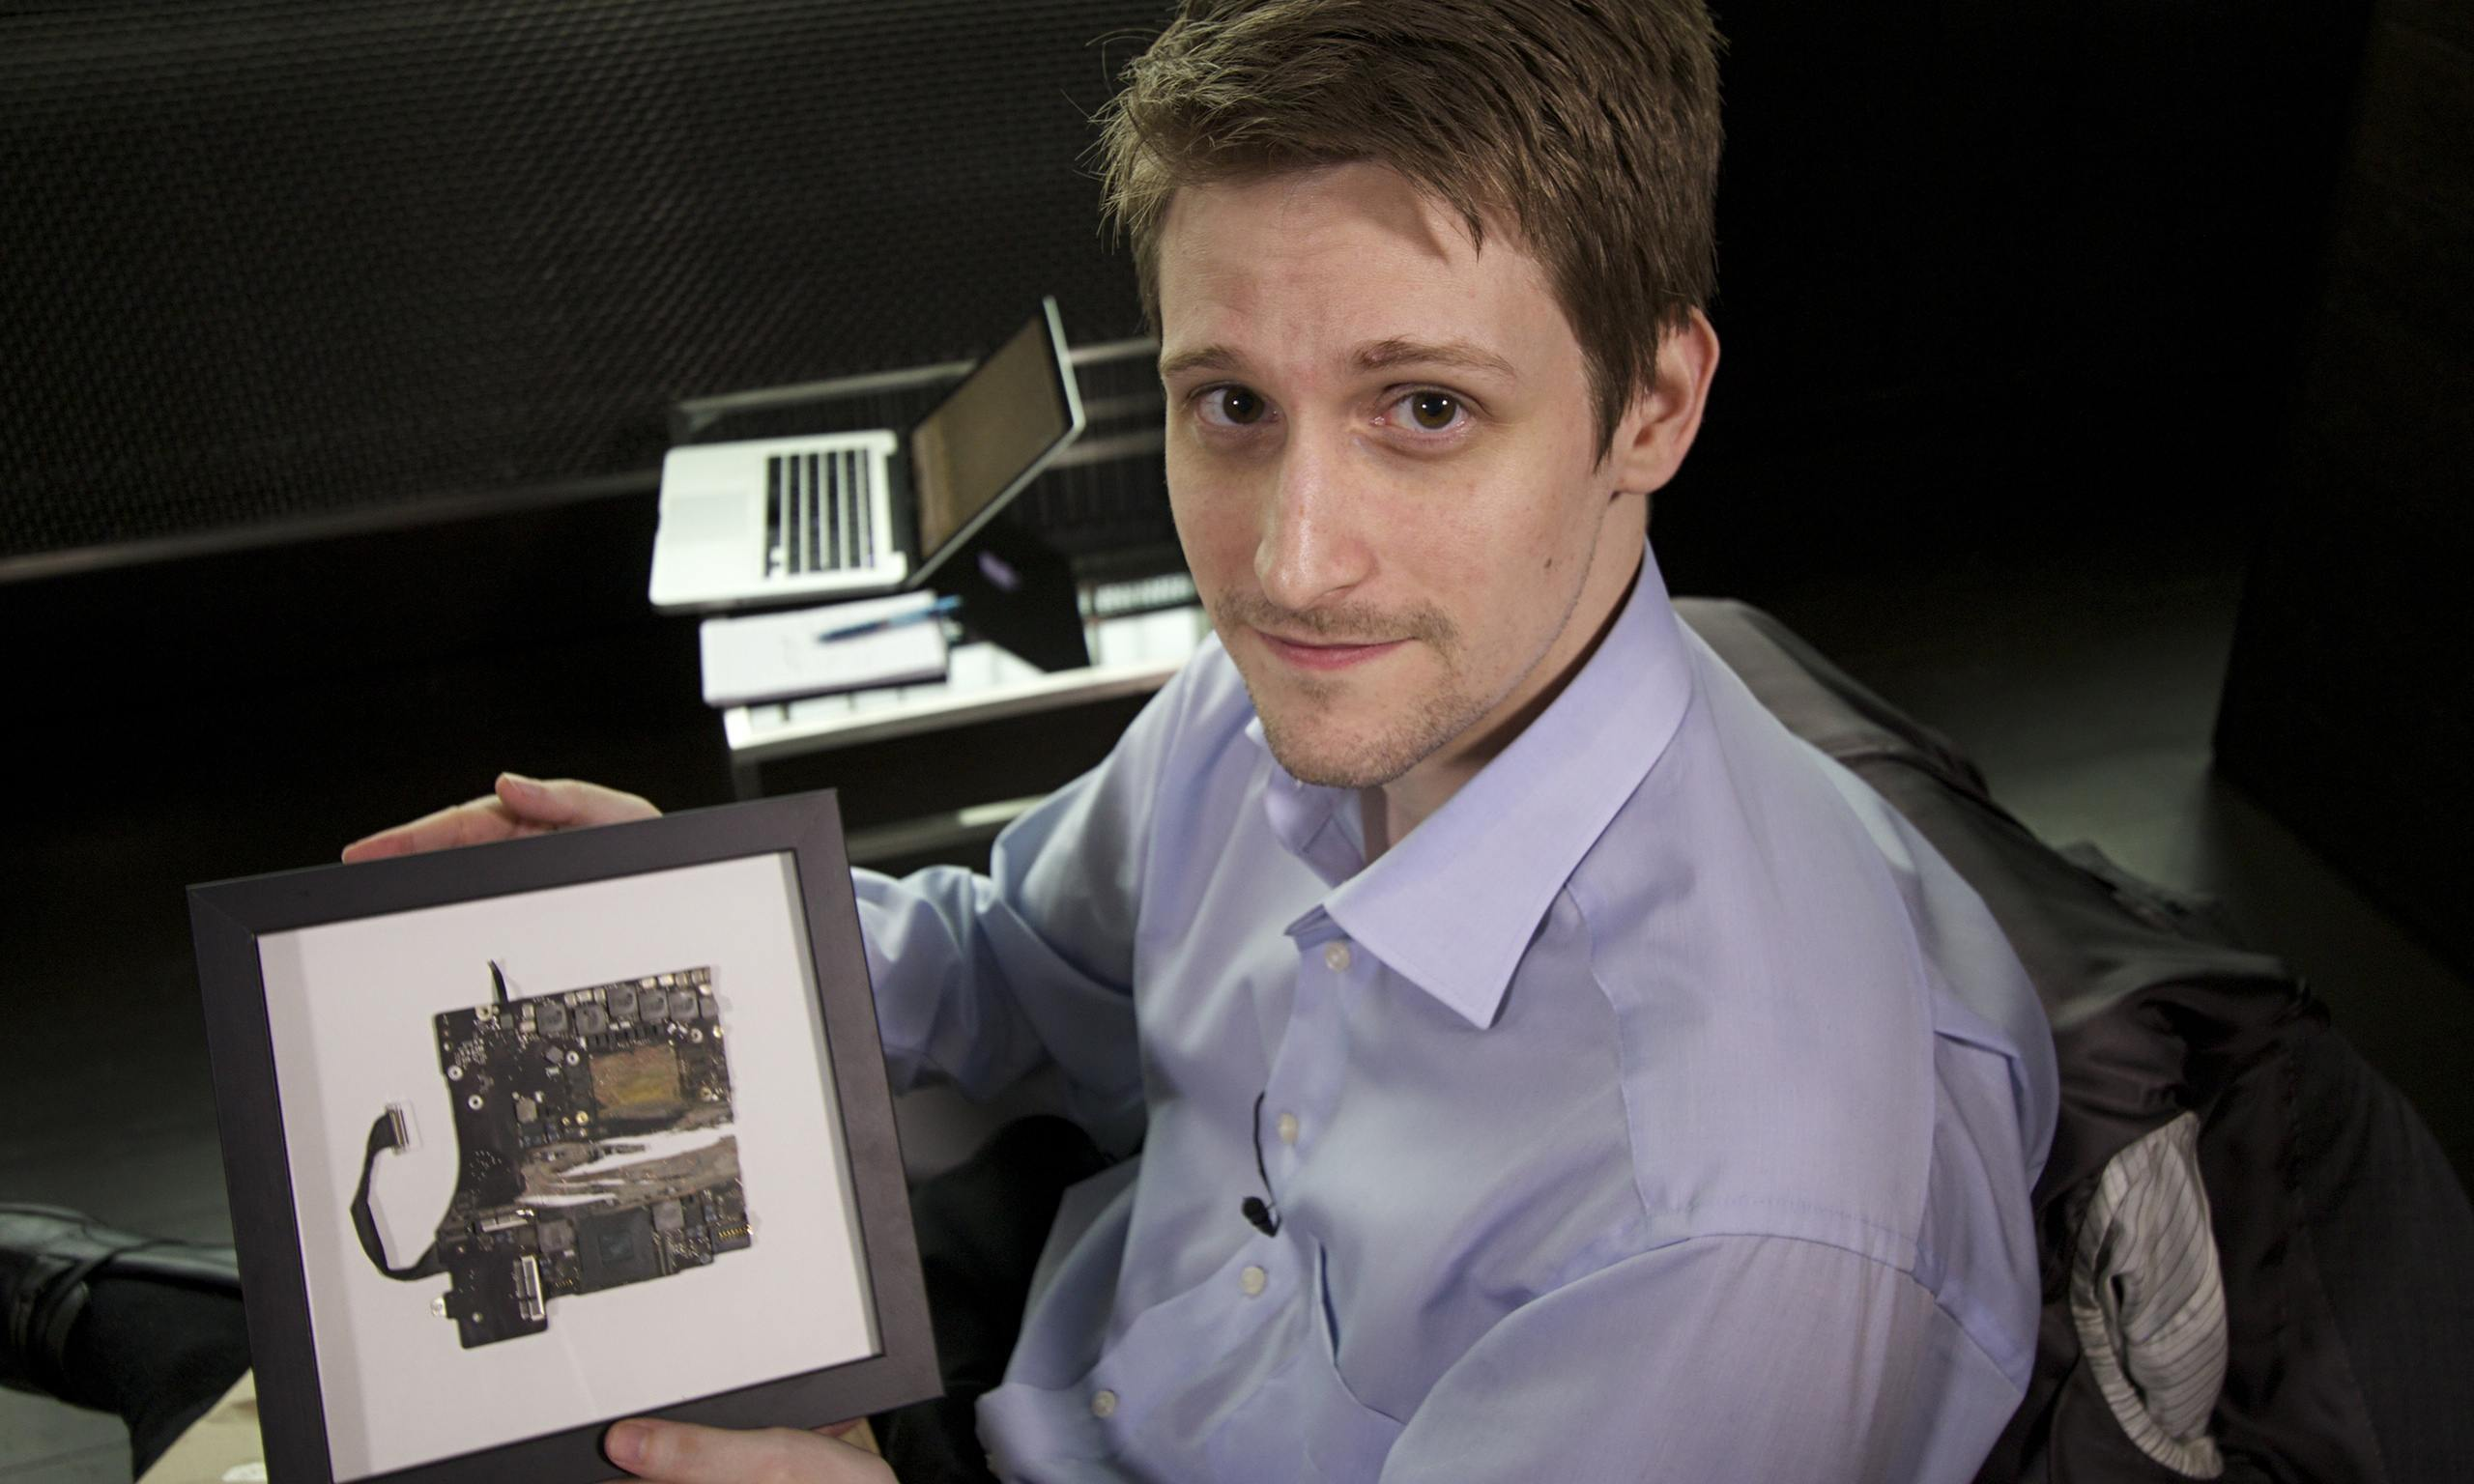 Edward Snowden shows surveillance nsa at work 2015